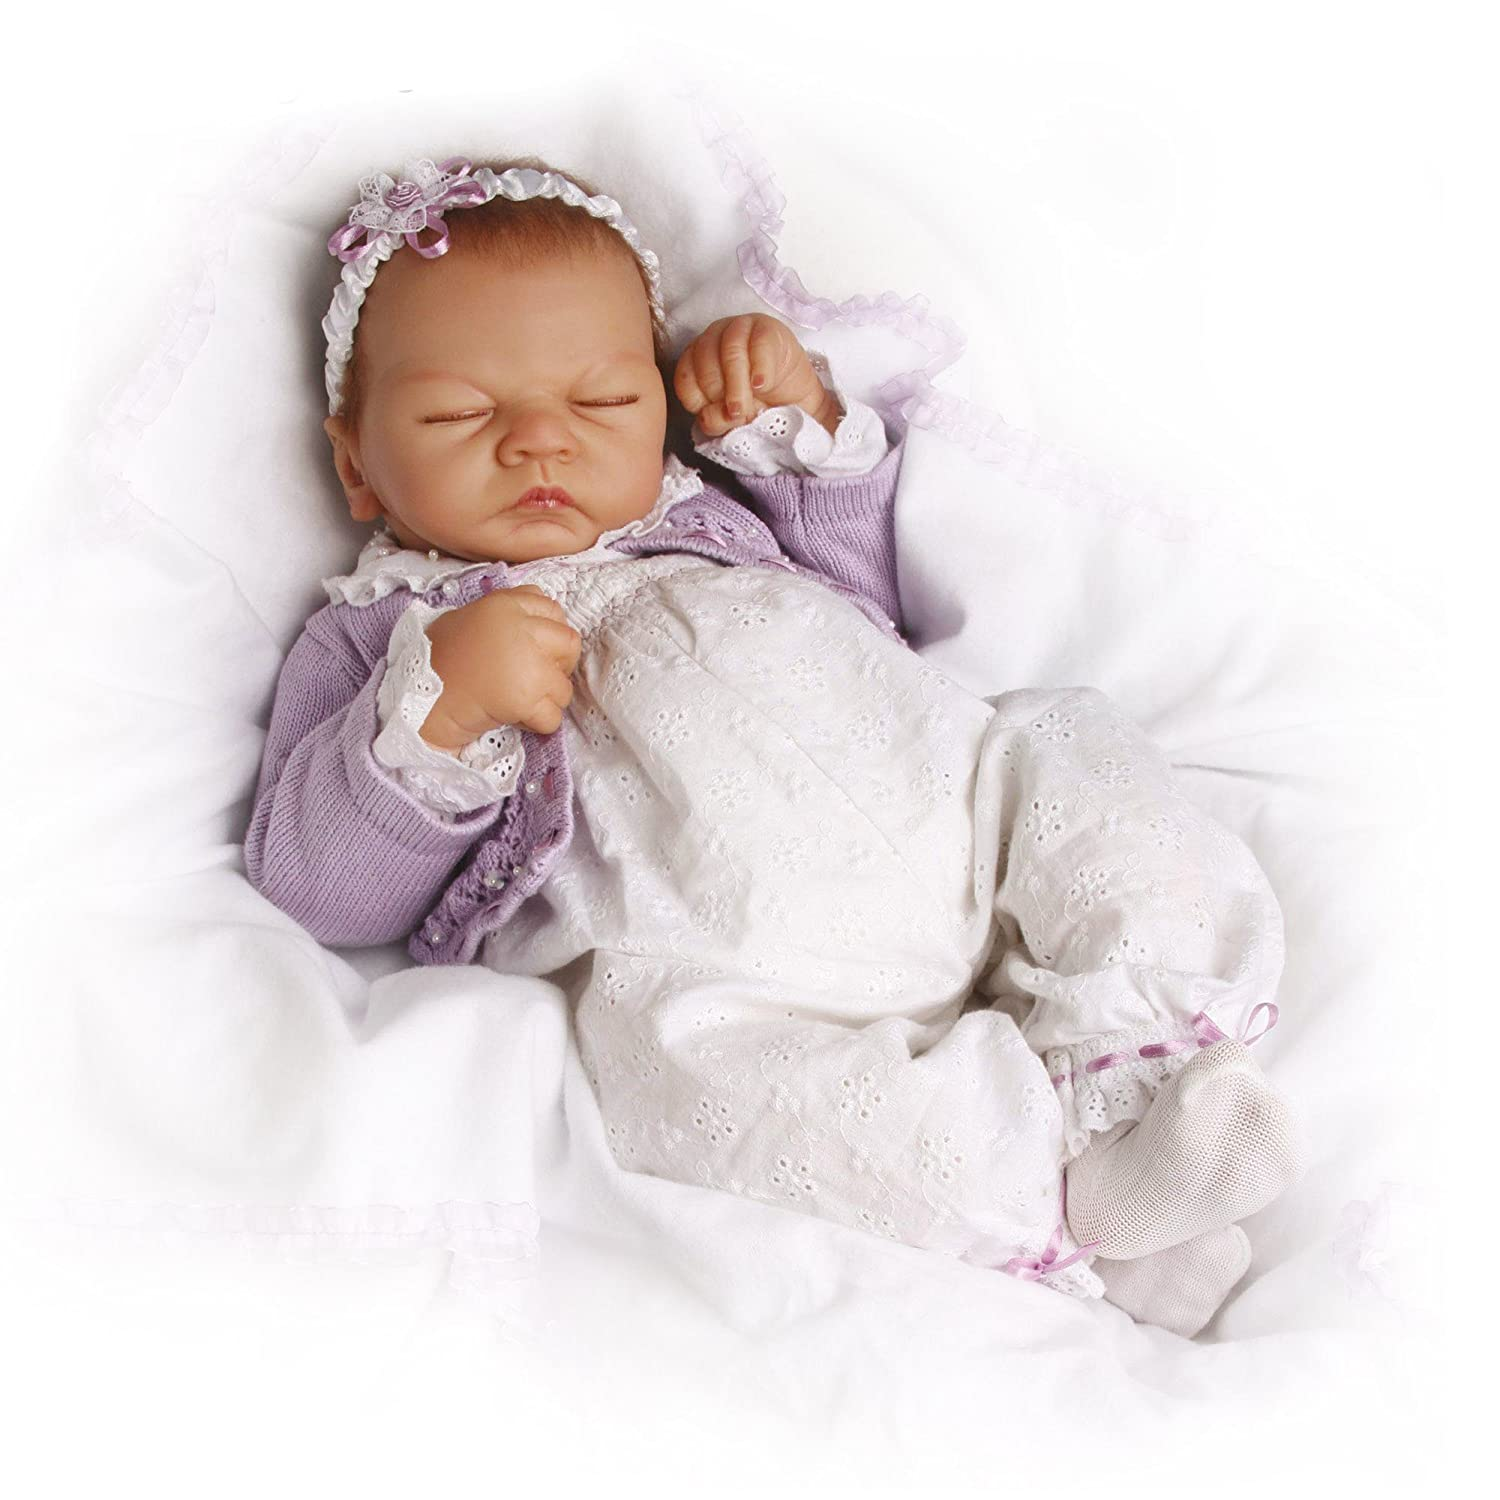 Ashton Drake 'Sweet Dreams Emily' - Lifelike Baby Doll by Linda Webb - With Simulated Breathing and RealTouch Vinyl Skin